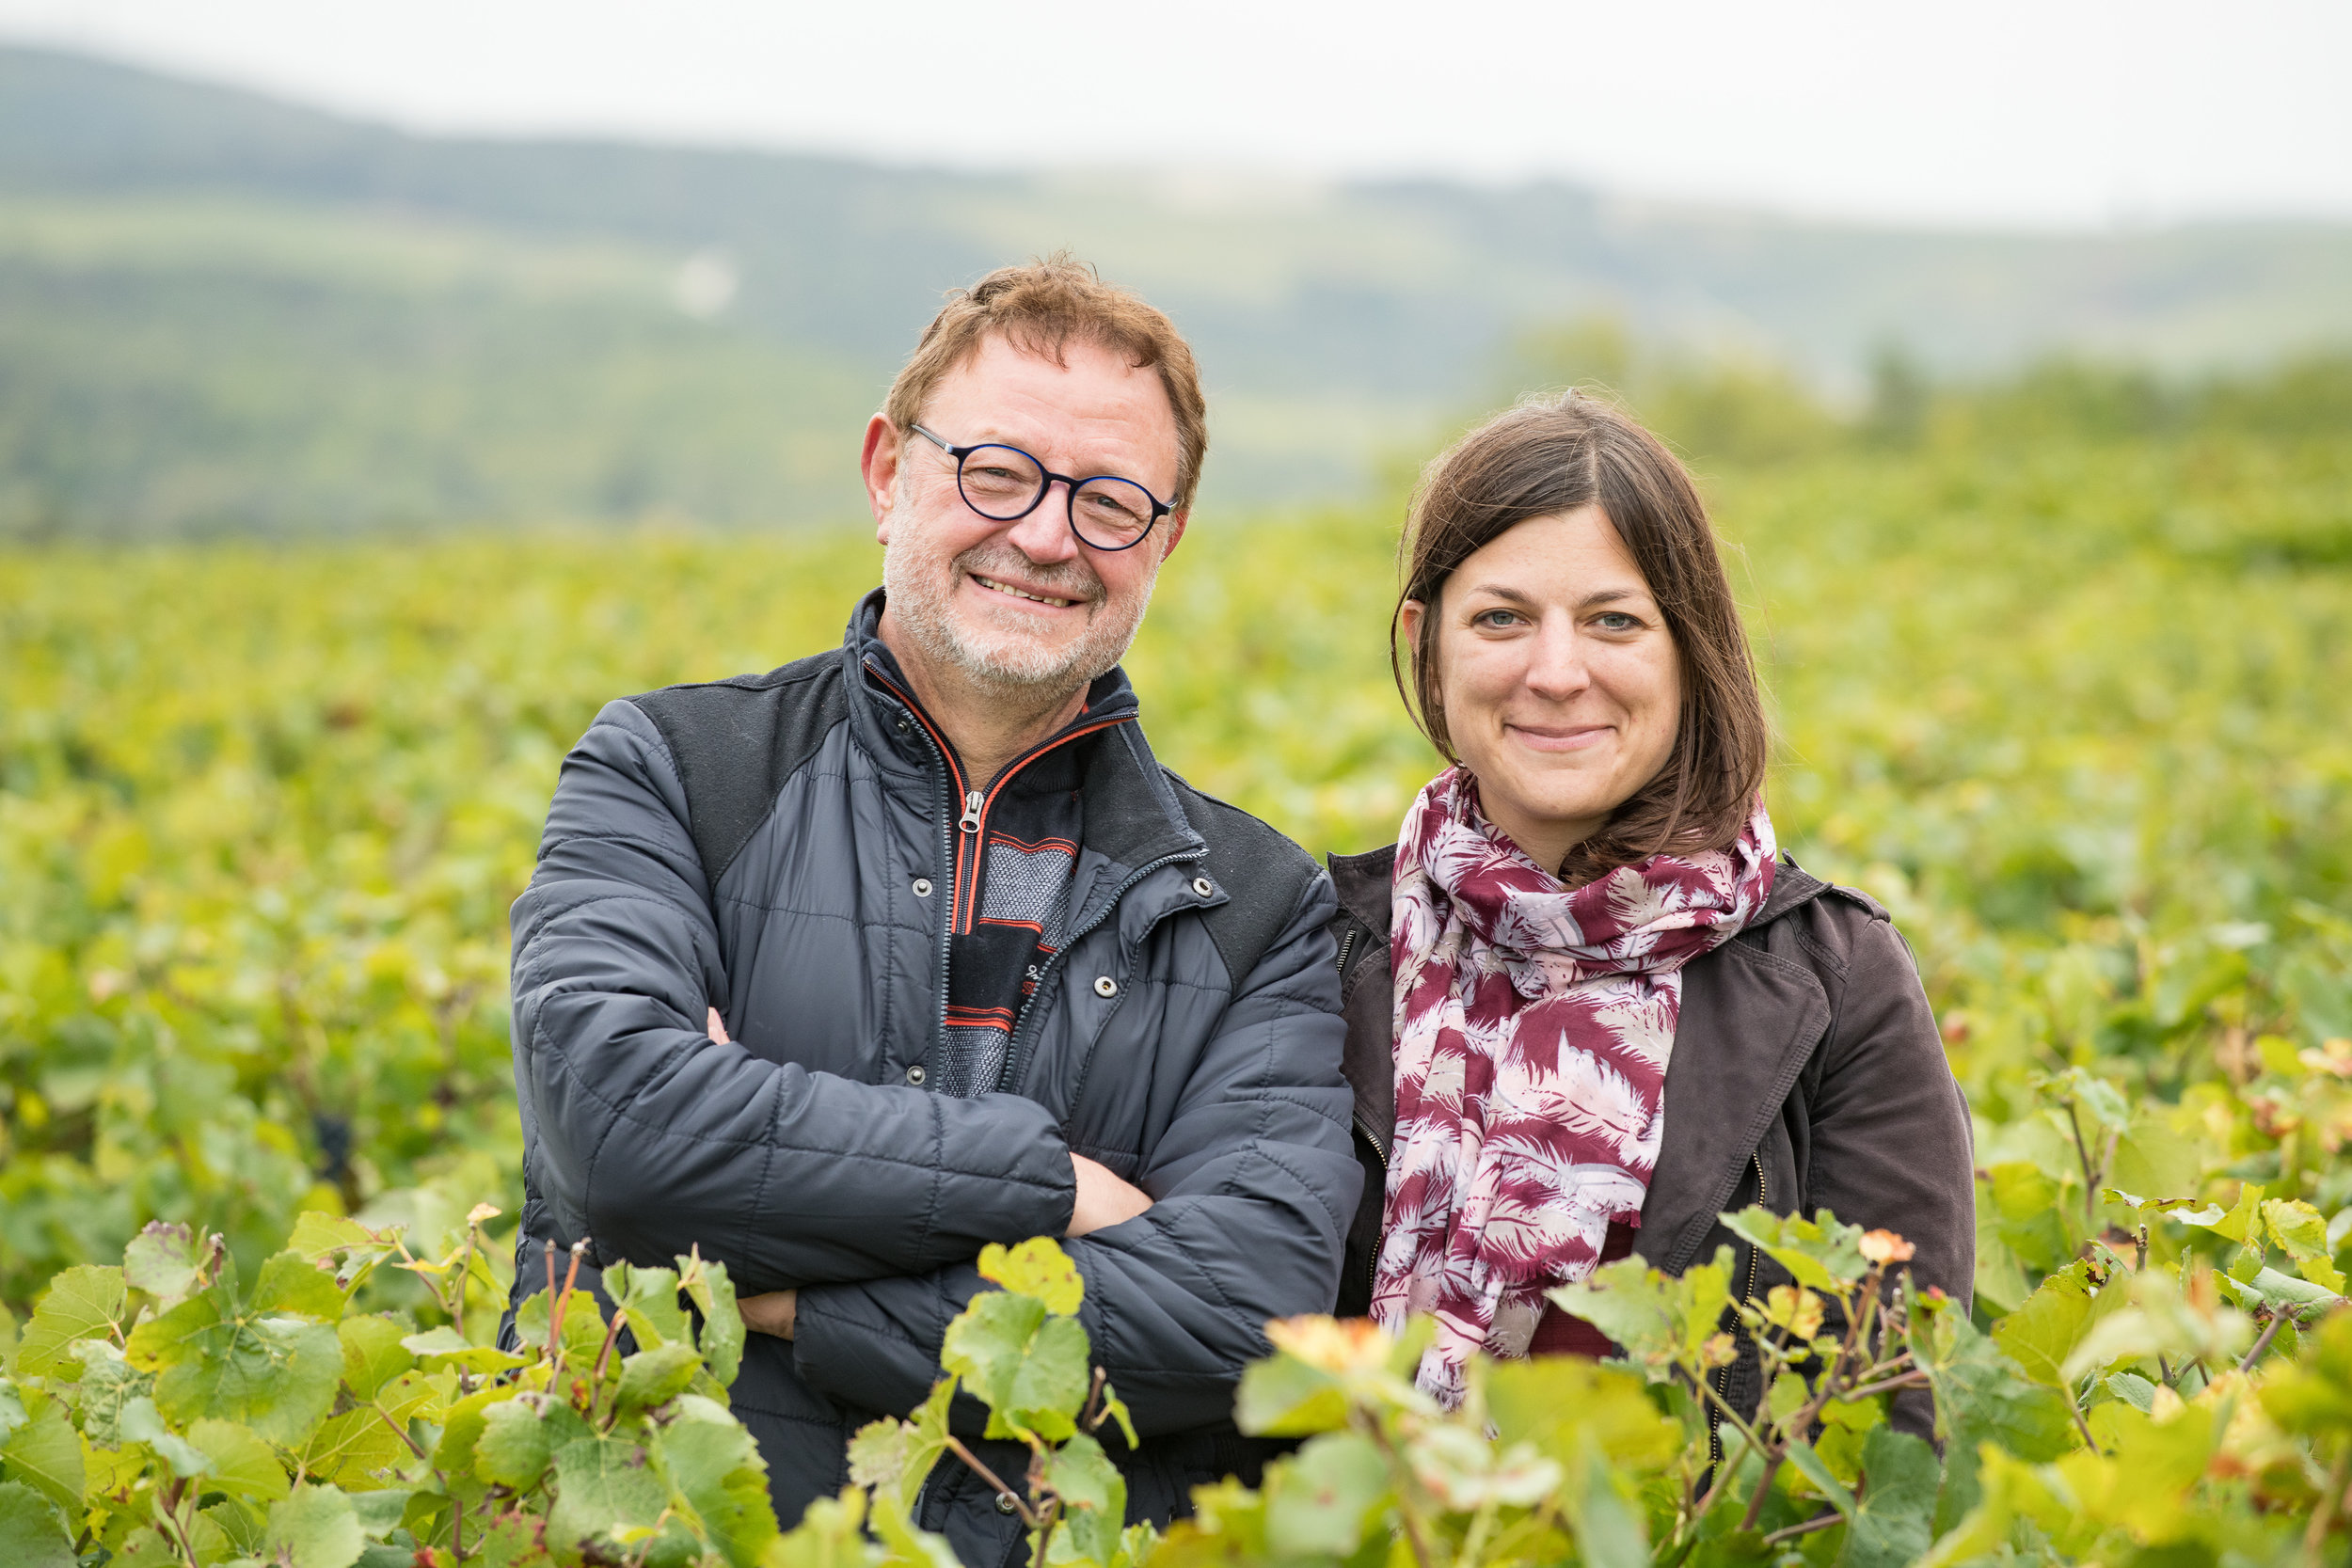 Father and daughter (Pascal and Emilie Morel) in the vineyard.